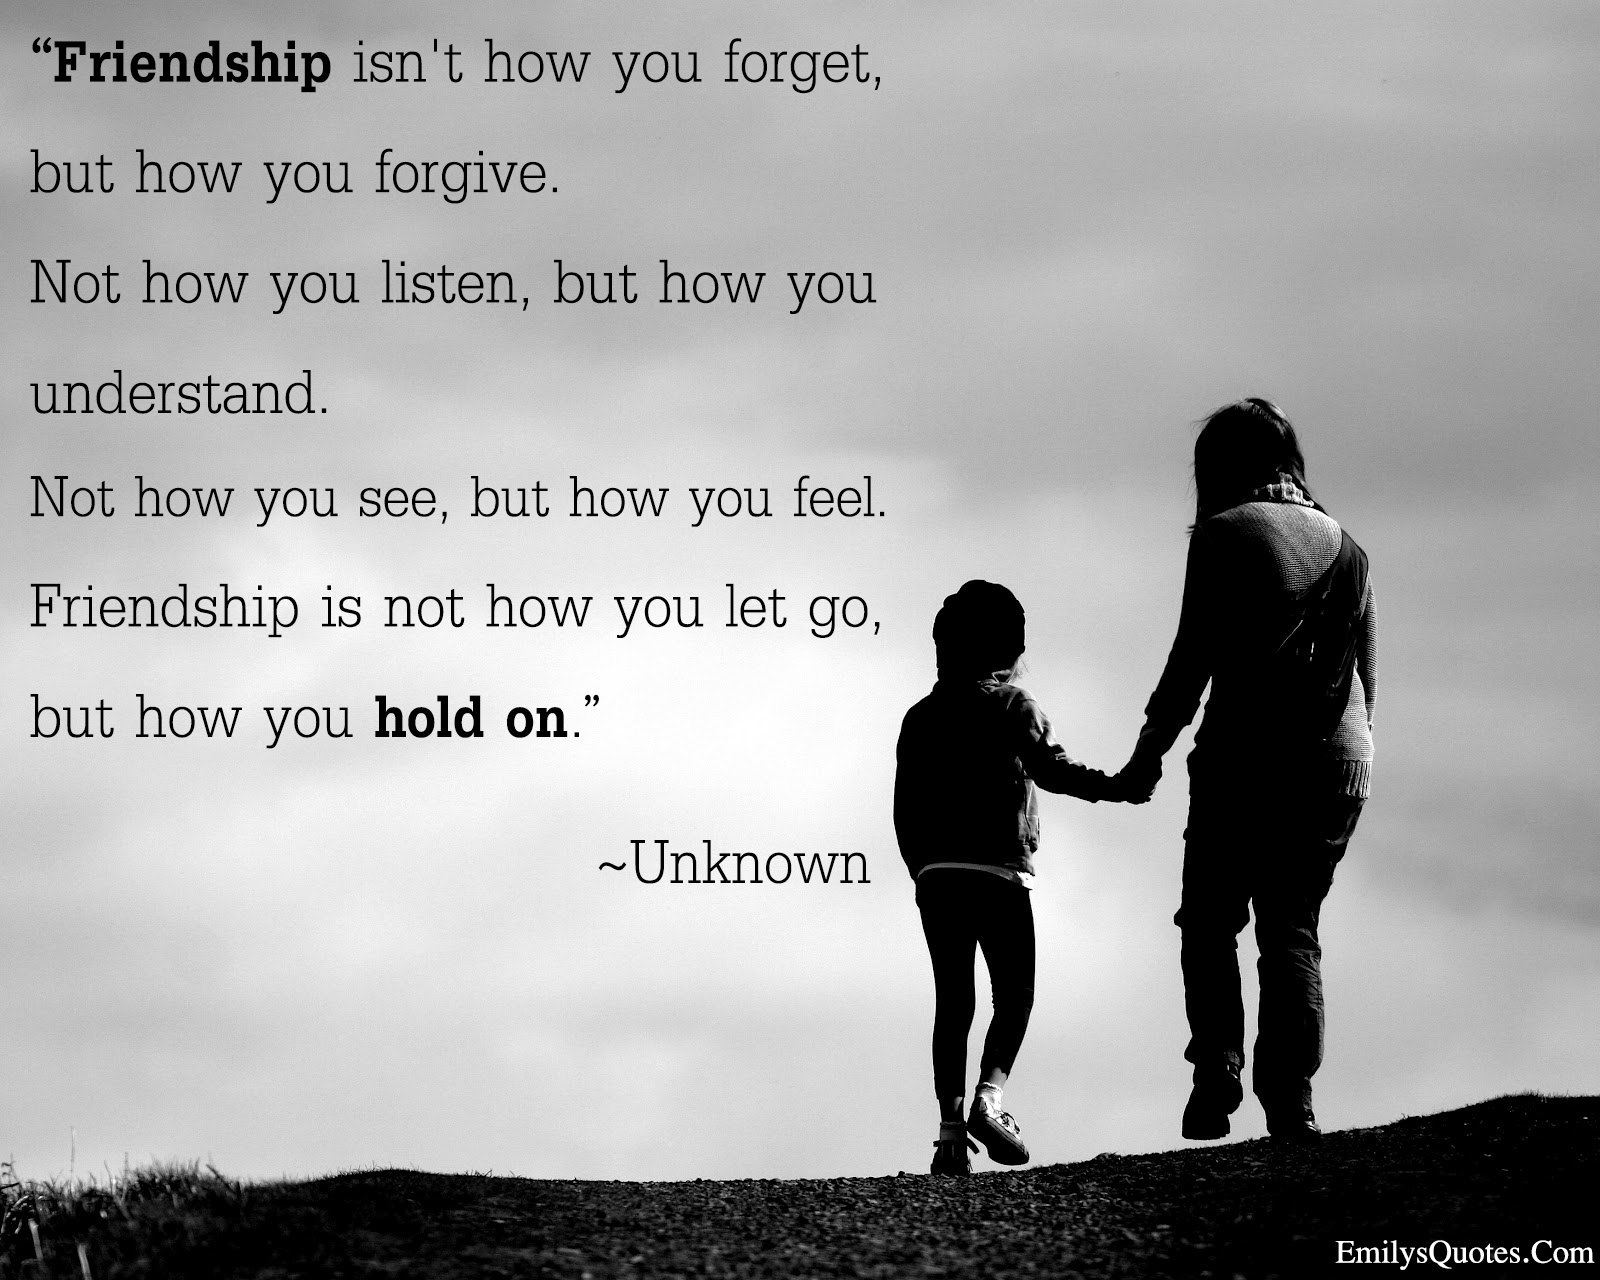 Quotes About Friendship And Forgiveness Forgivness  Popular Inspirational Quotes At Emilysquotes